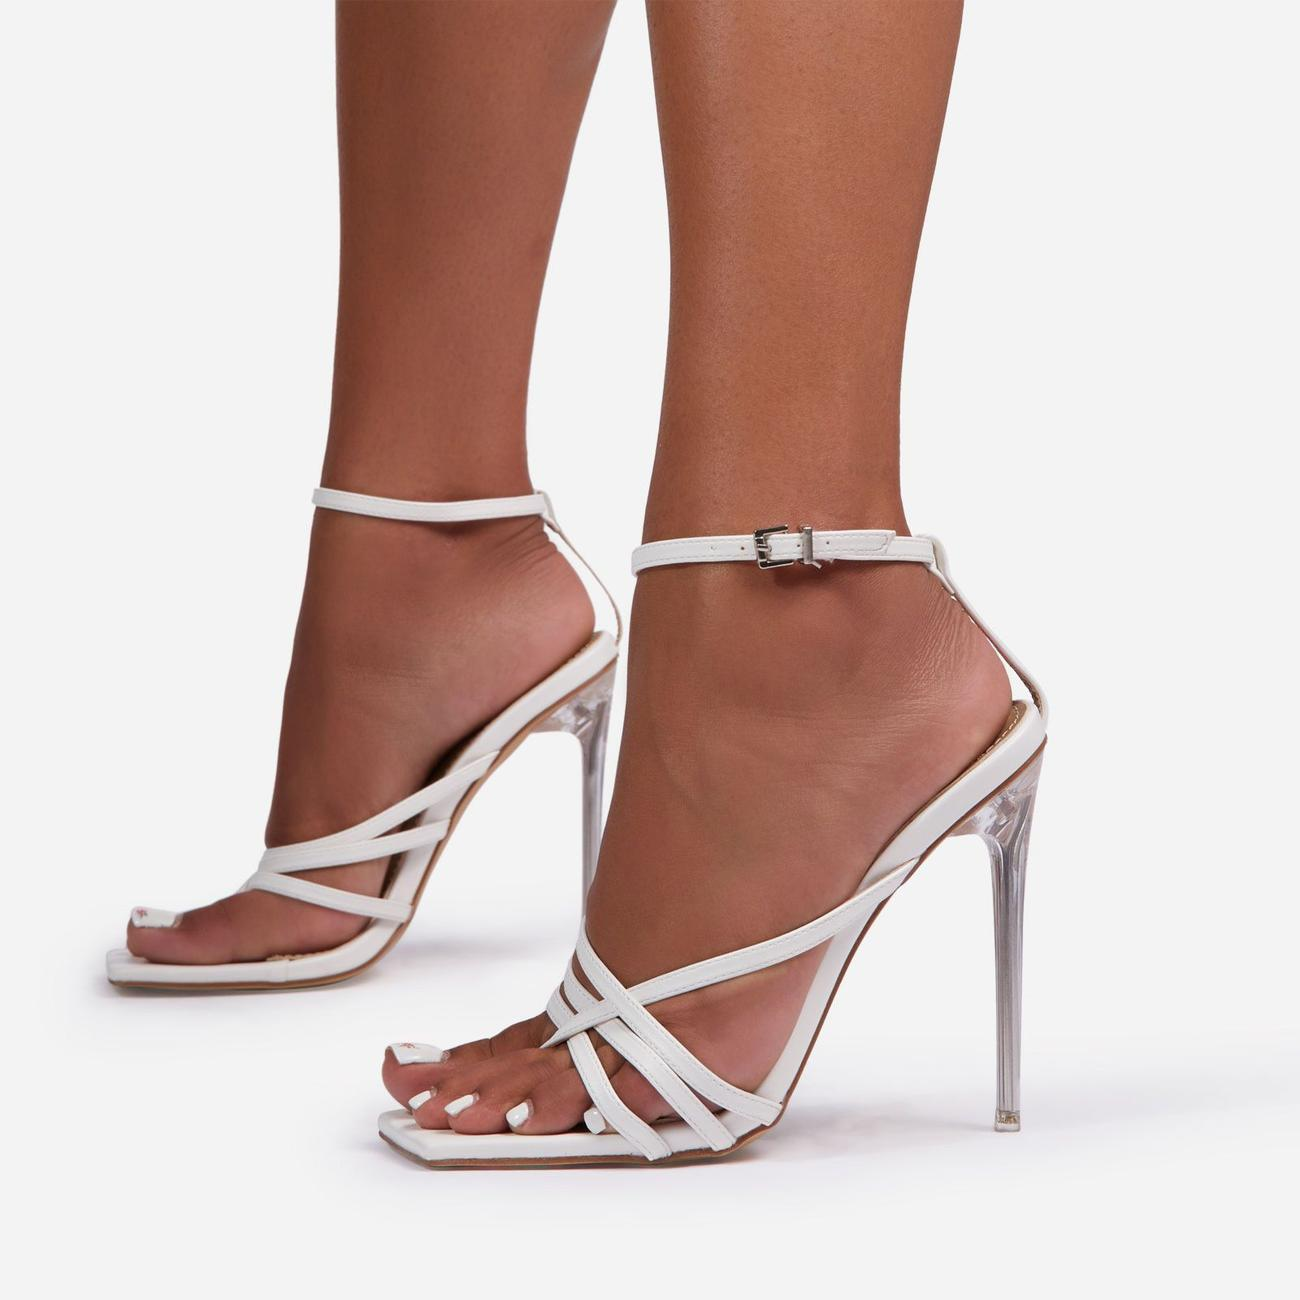 Rayon Strappy Square Toe Clear Perspex Heel In White Faux Leather Image 1